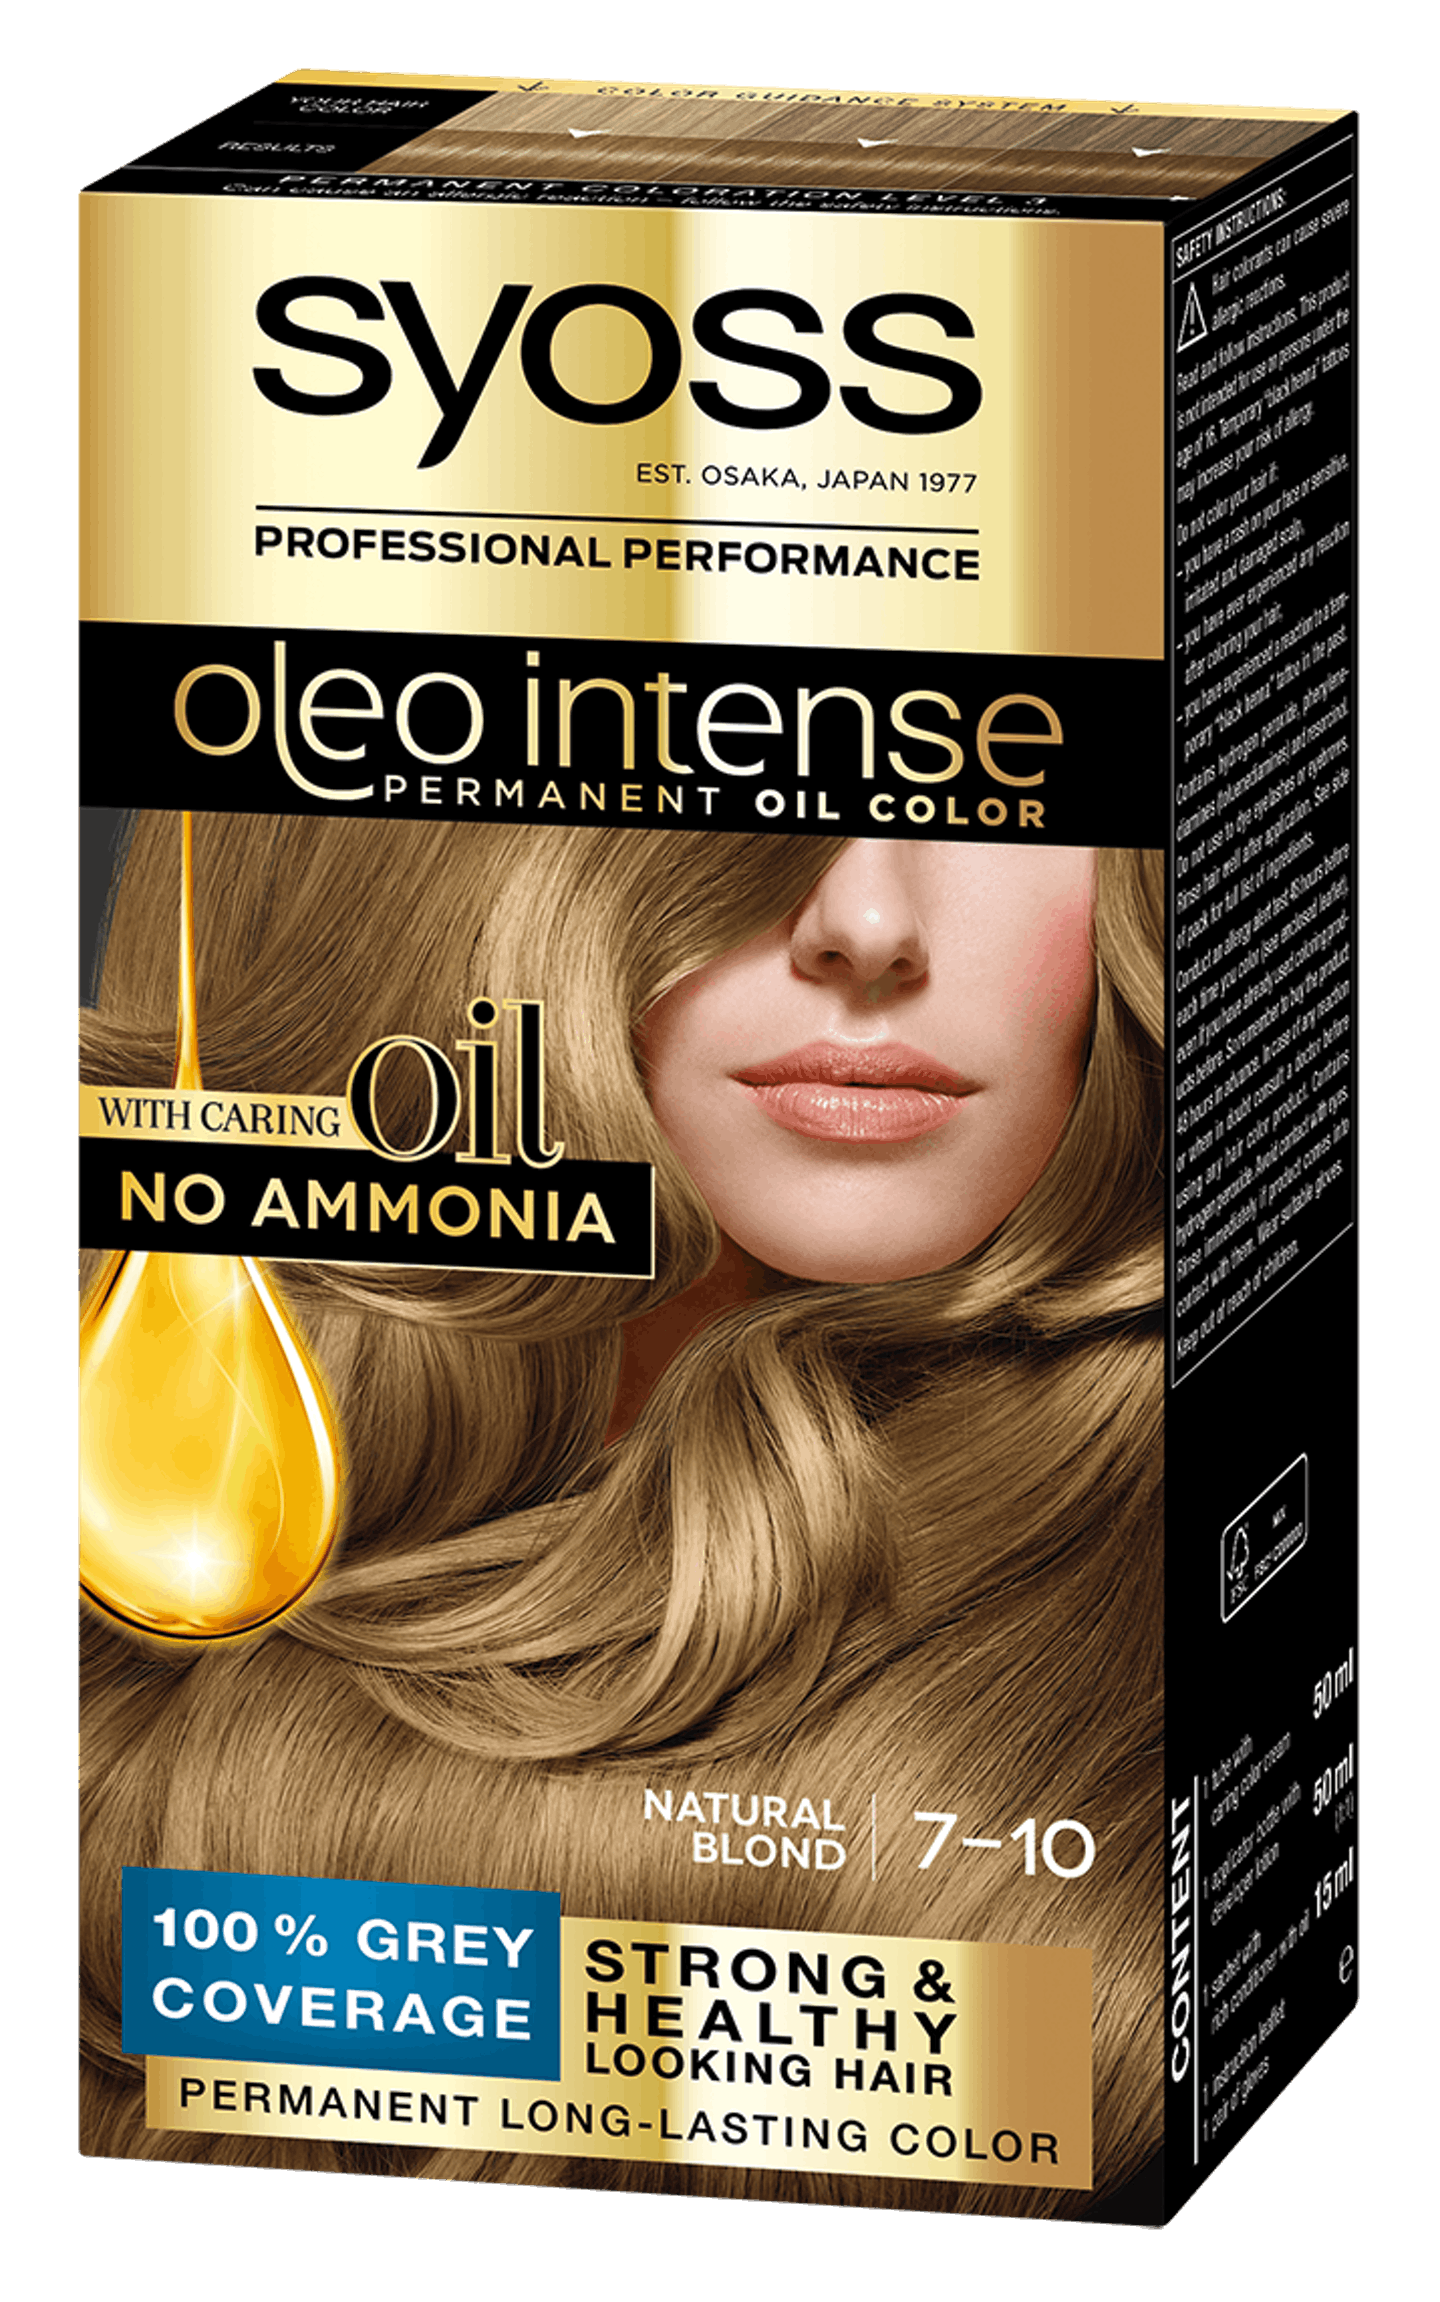 Natural Blond 7-10